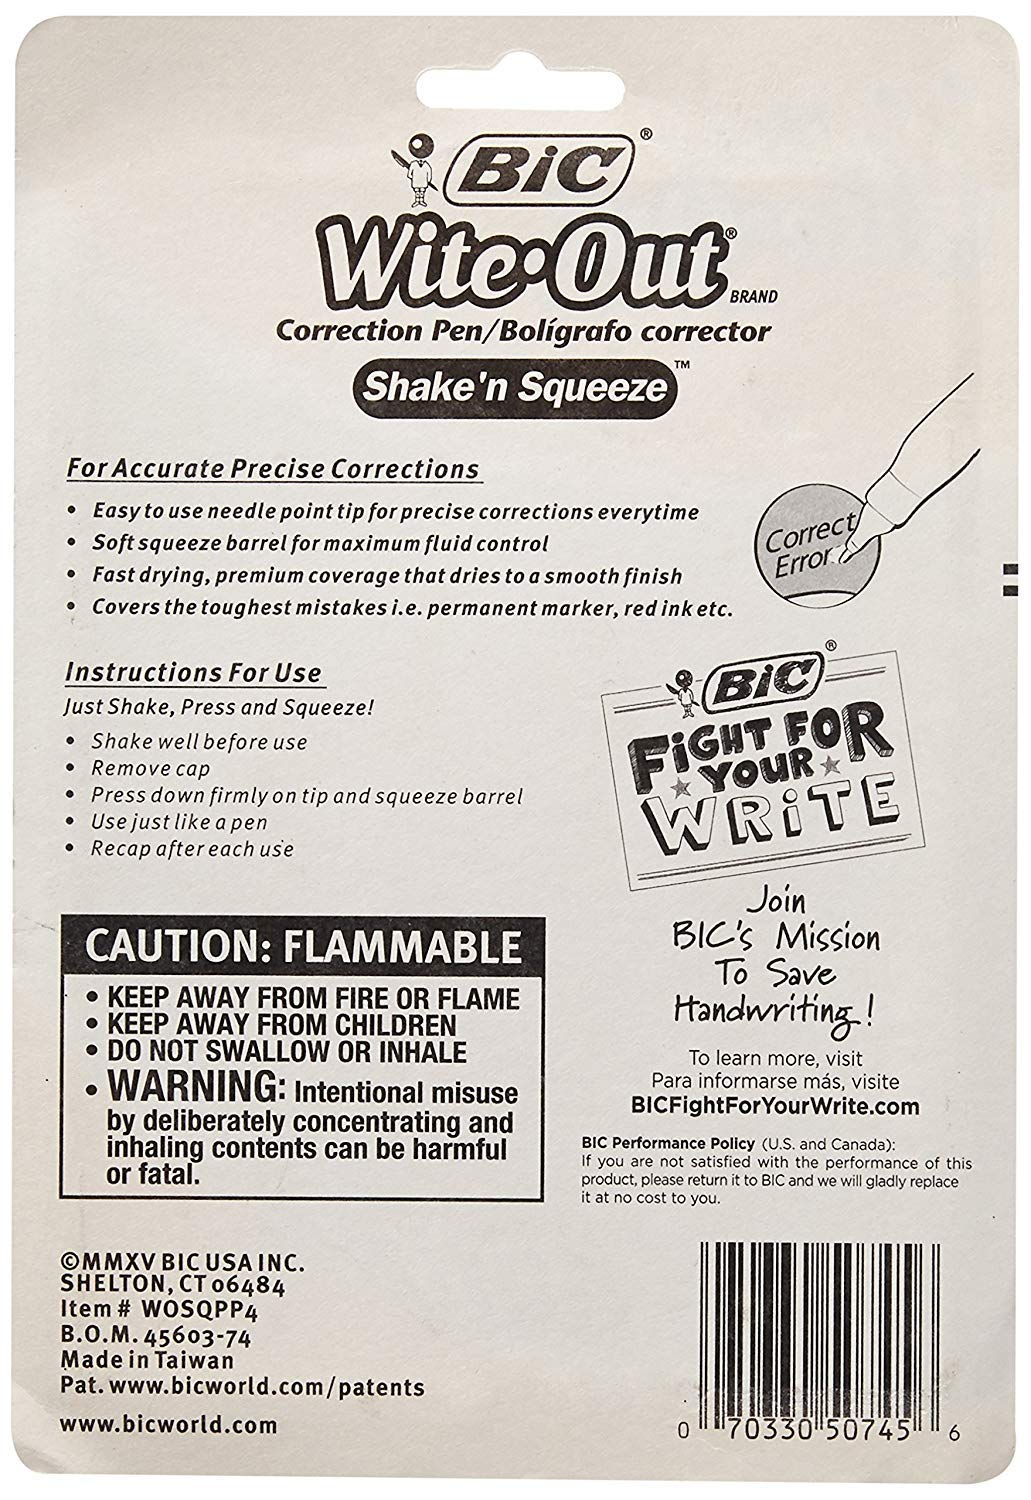 BIC Wite-Out Shake 'n Squeeze Correction Pen, 8 ml, White, 2 Pack by BIC (Image #2)